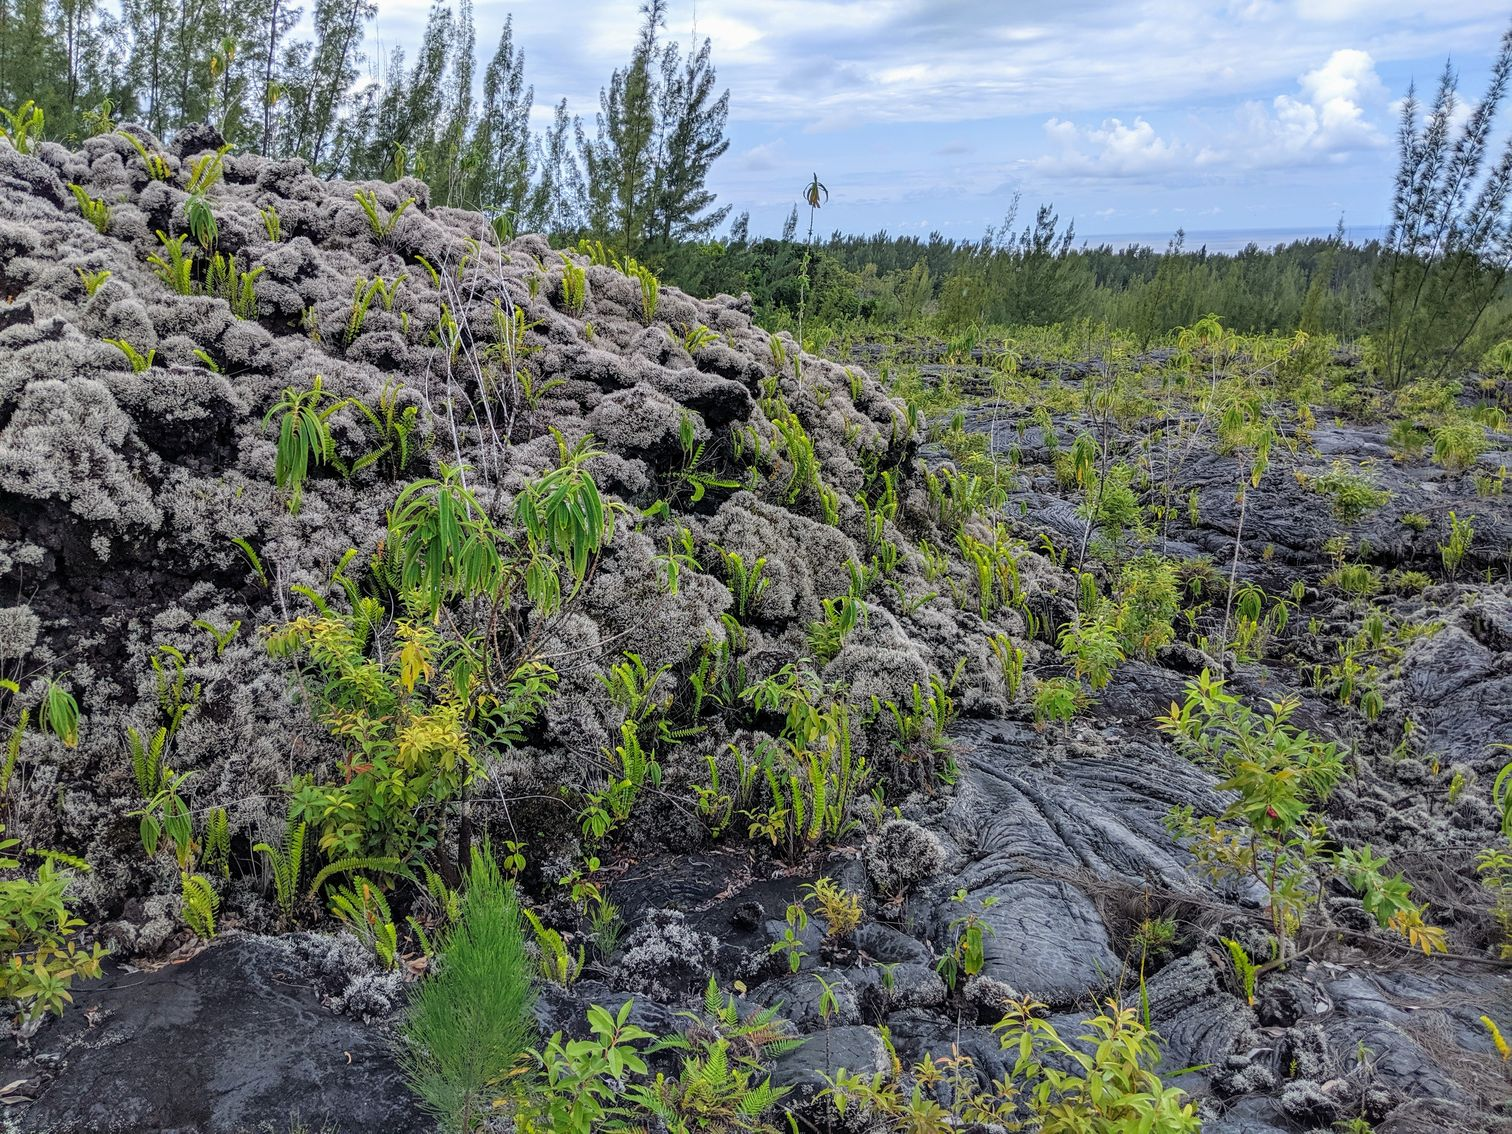 Vegetation poking through lava flow